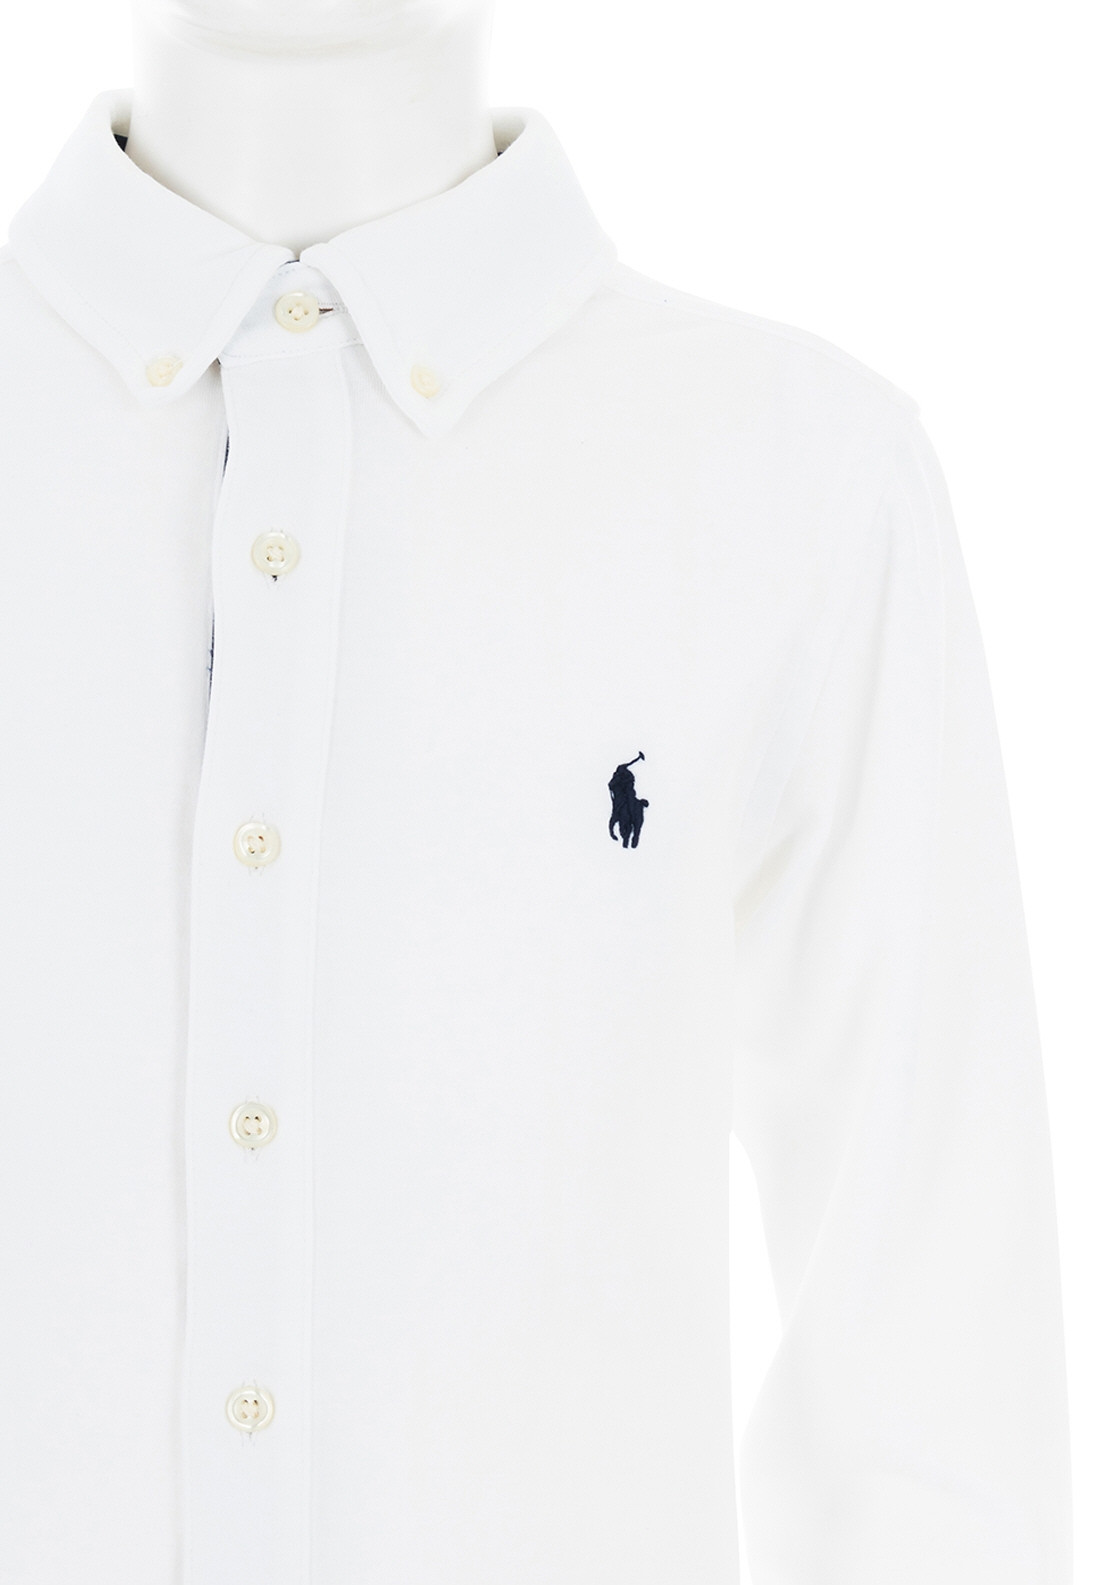 118373bc Ralph Lauren Long Sleeve Polo Jersey Shirt, White. Be the first to review  this product